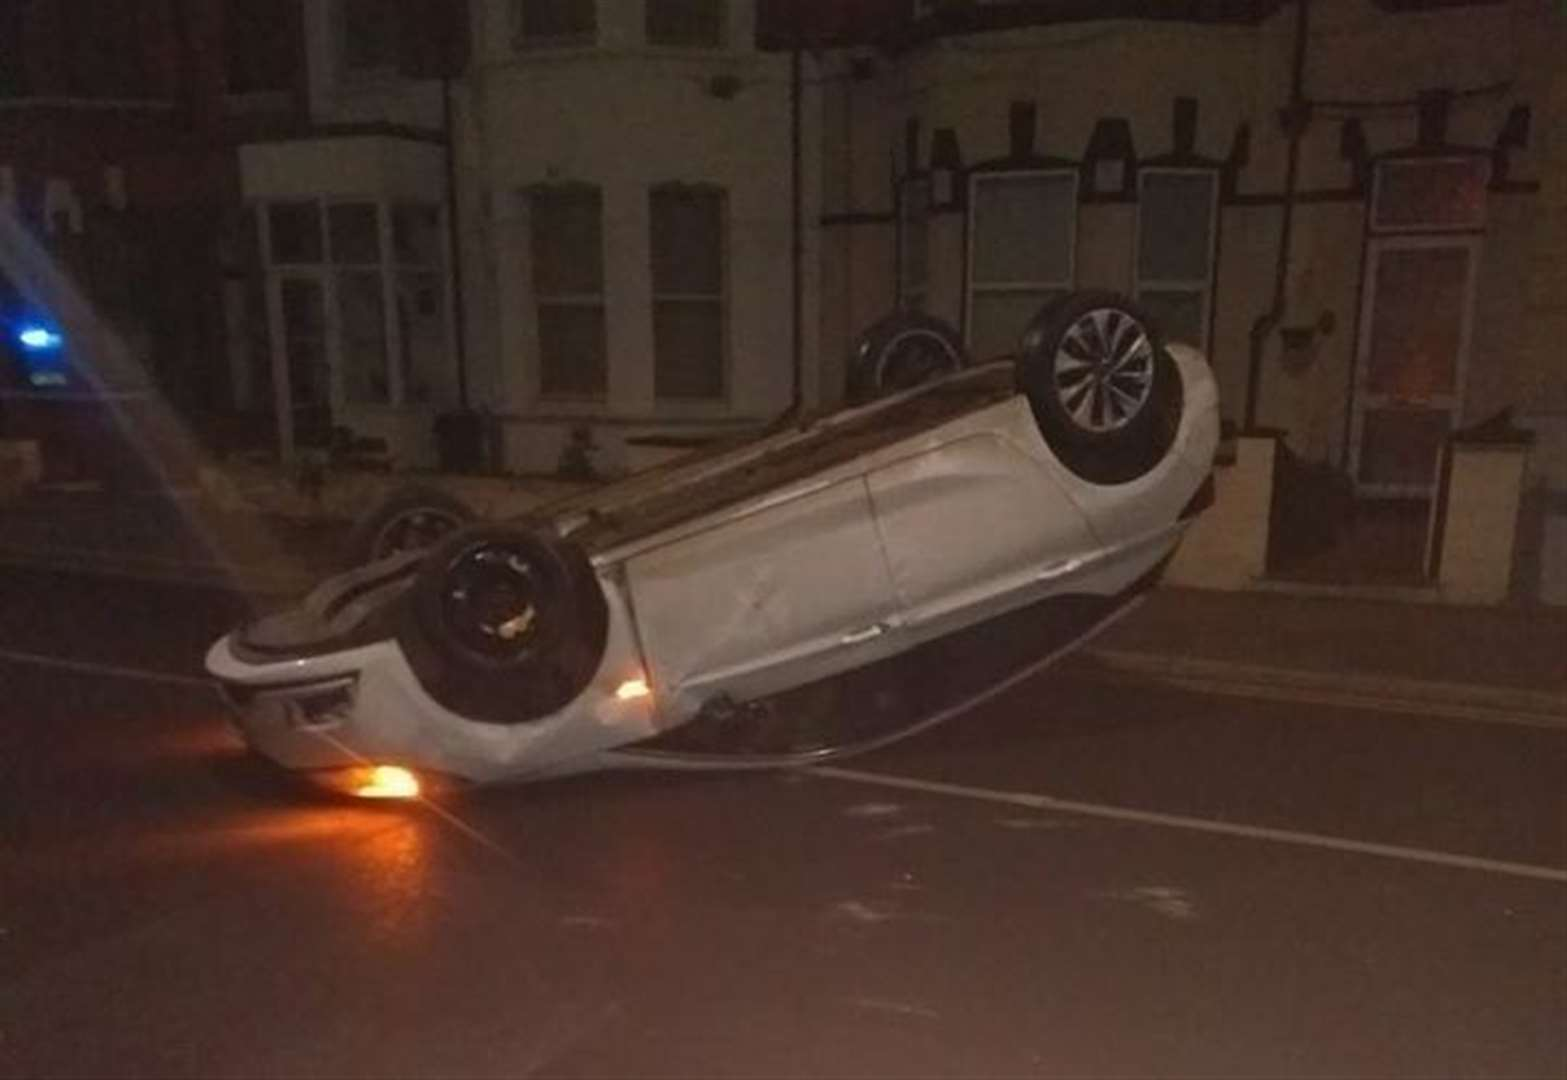 Person in hospital after car flips